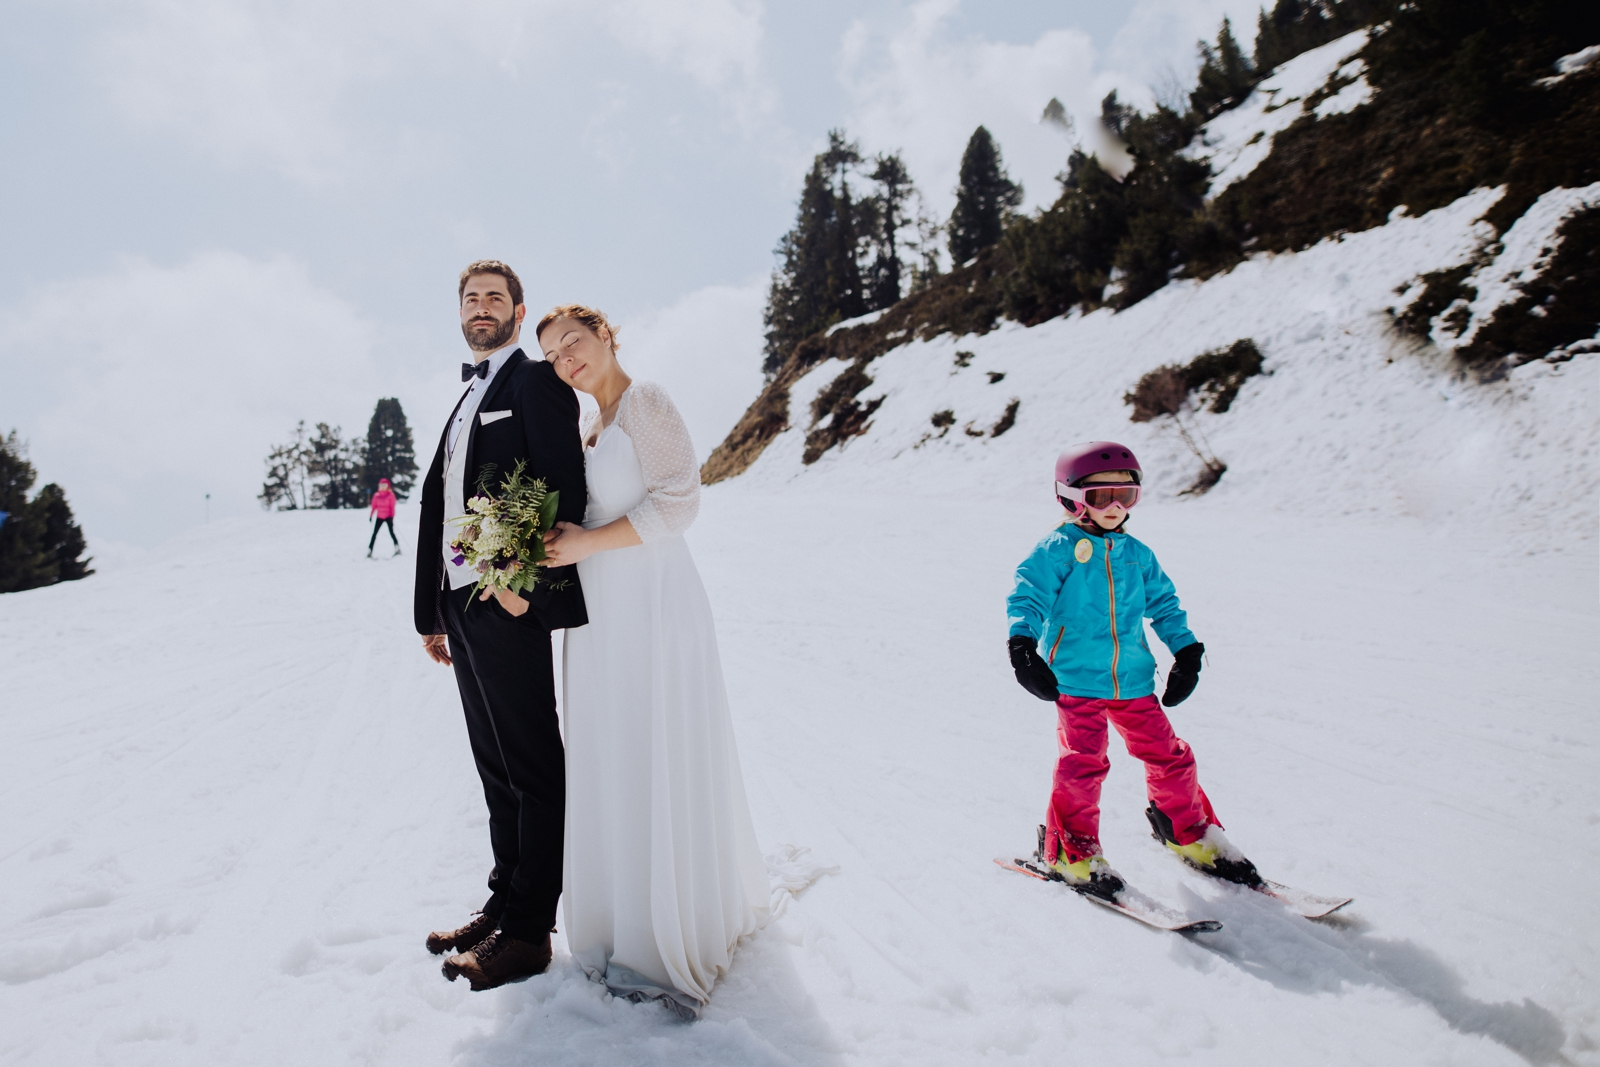 Honeymoon shoot in the mountains in Austria by Wild Connections Photography